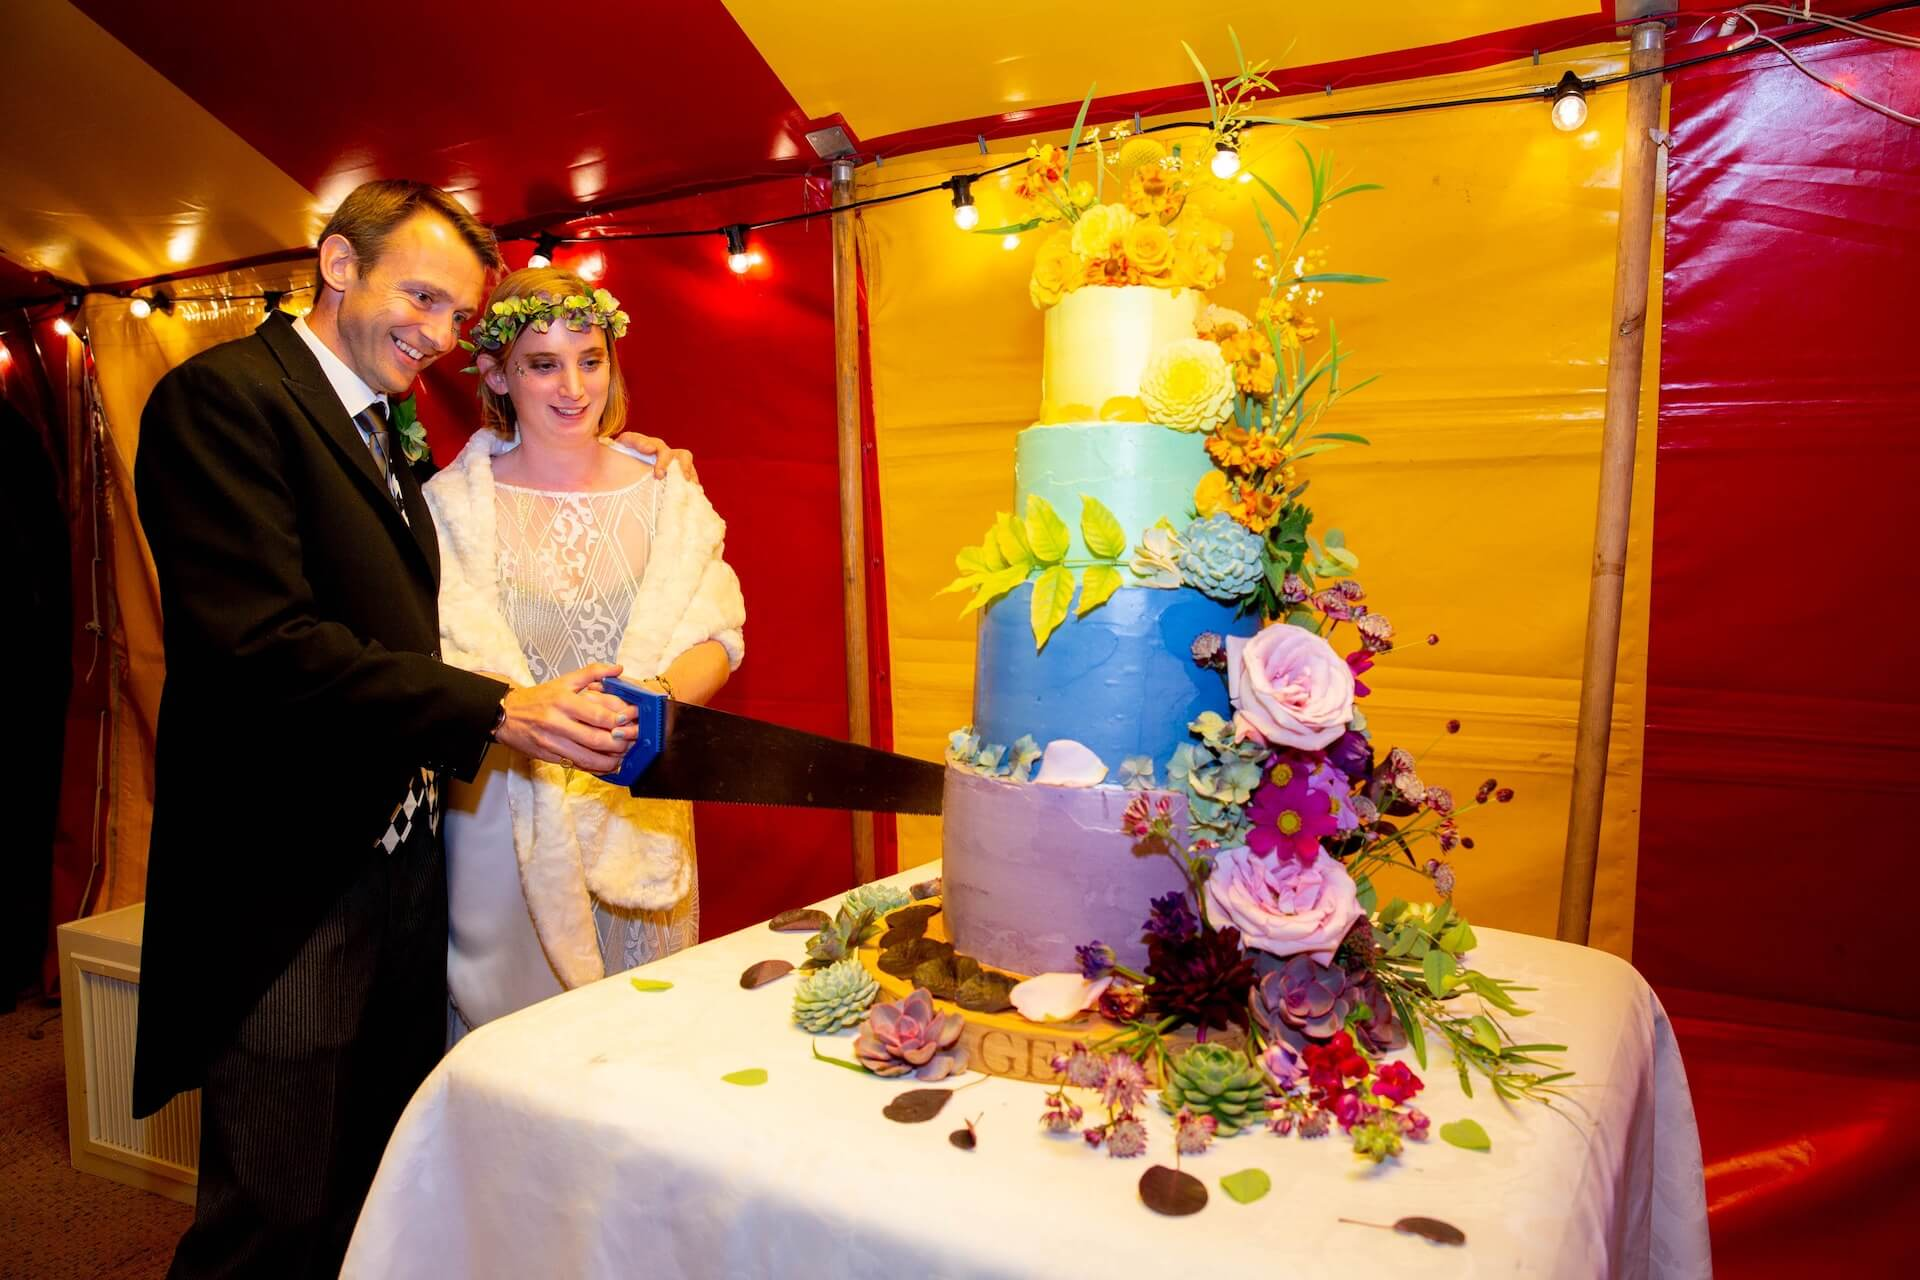 Cutting the wedding cake with a saw!